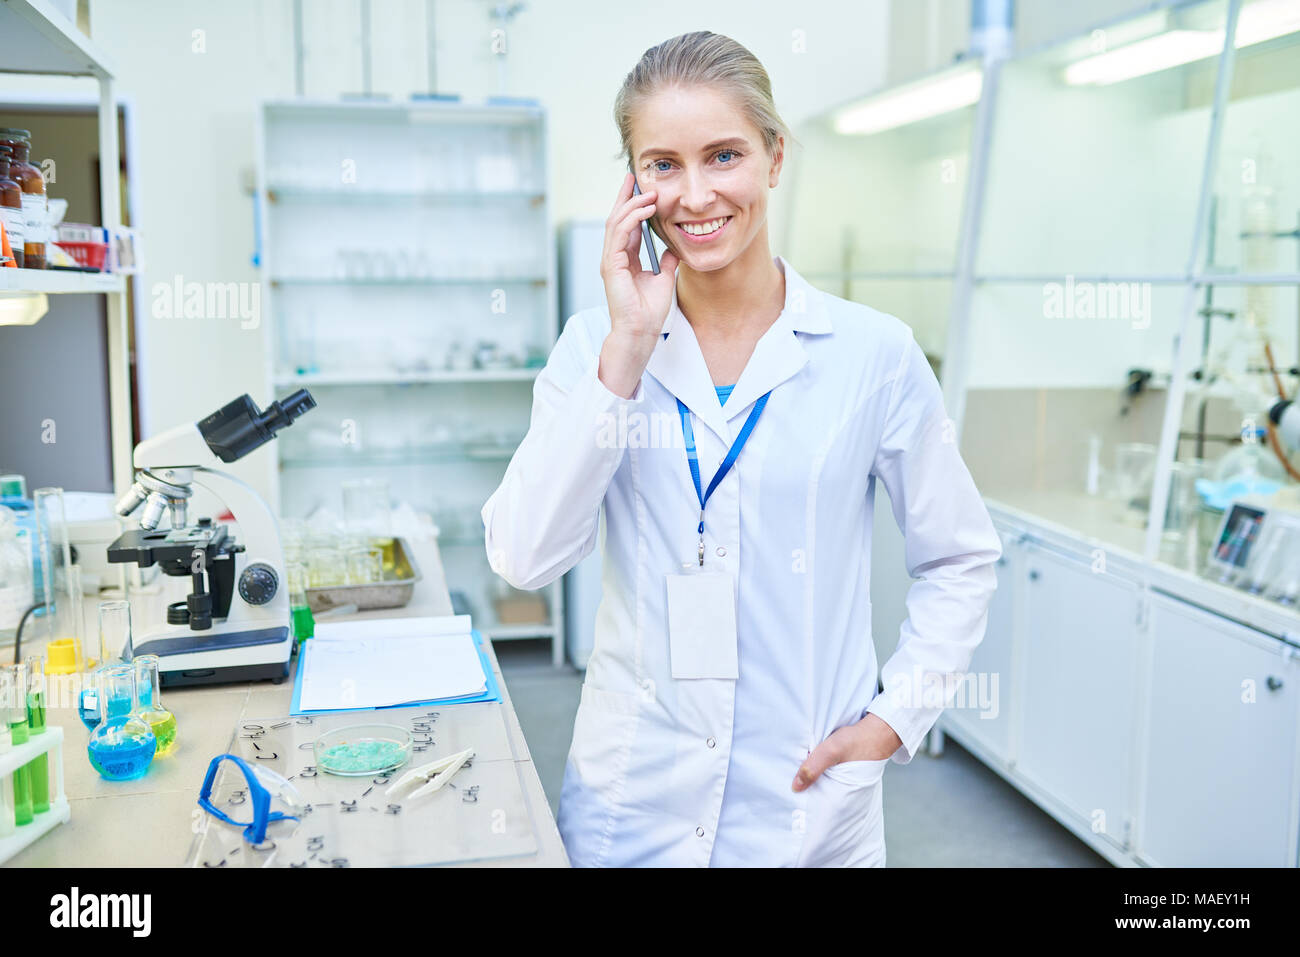 Happy medical specialist in laboratory - Stock Image